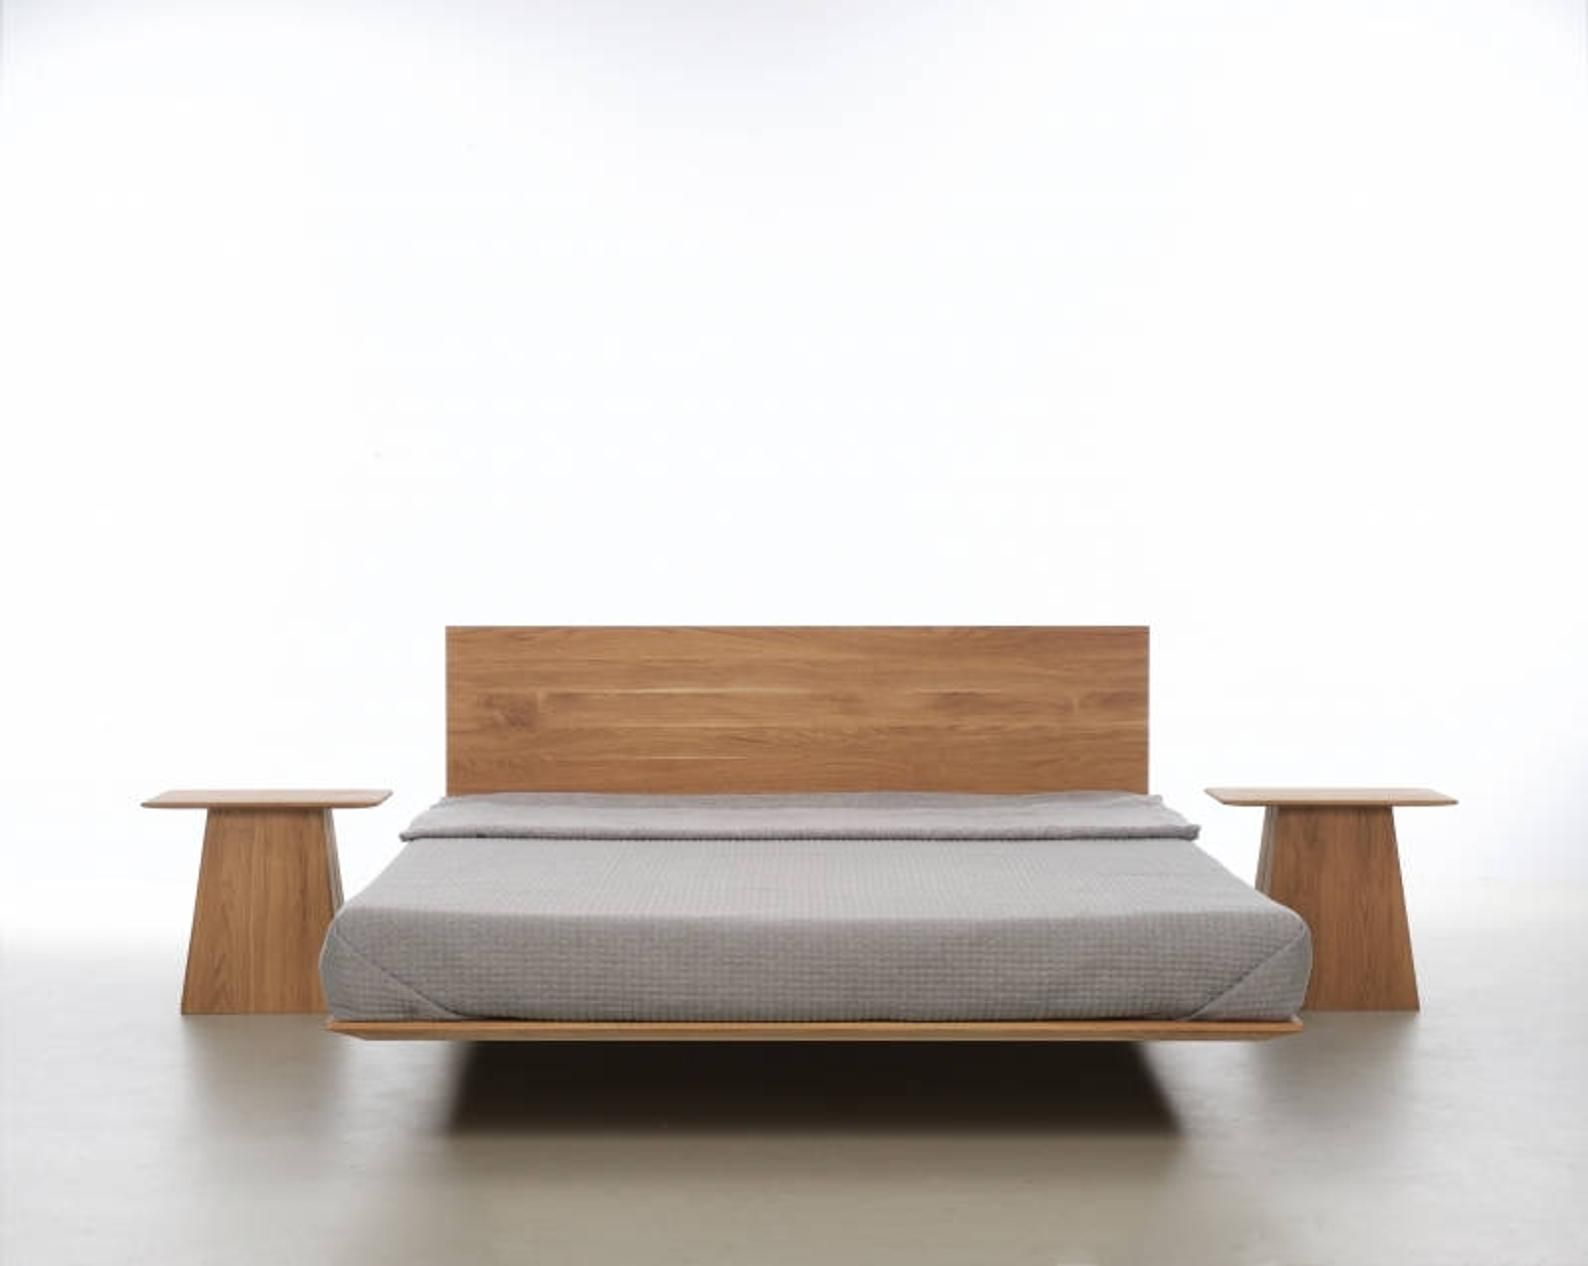 Mazzivo Outlet Bett Nobby 120 X 200 L Erle Holz L 1229 Uvp